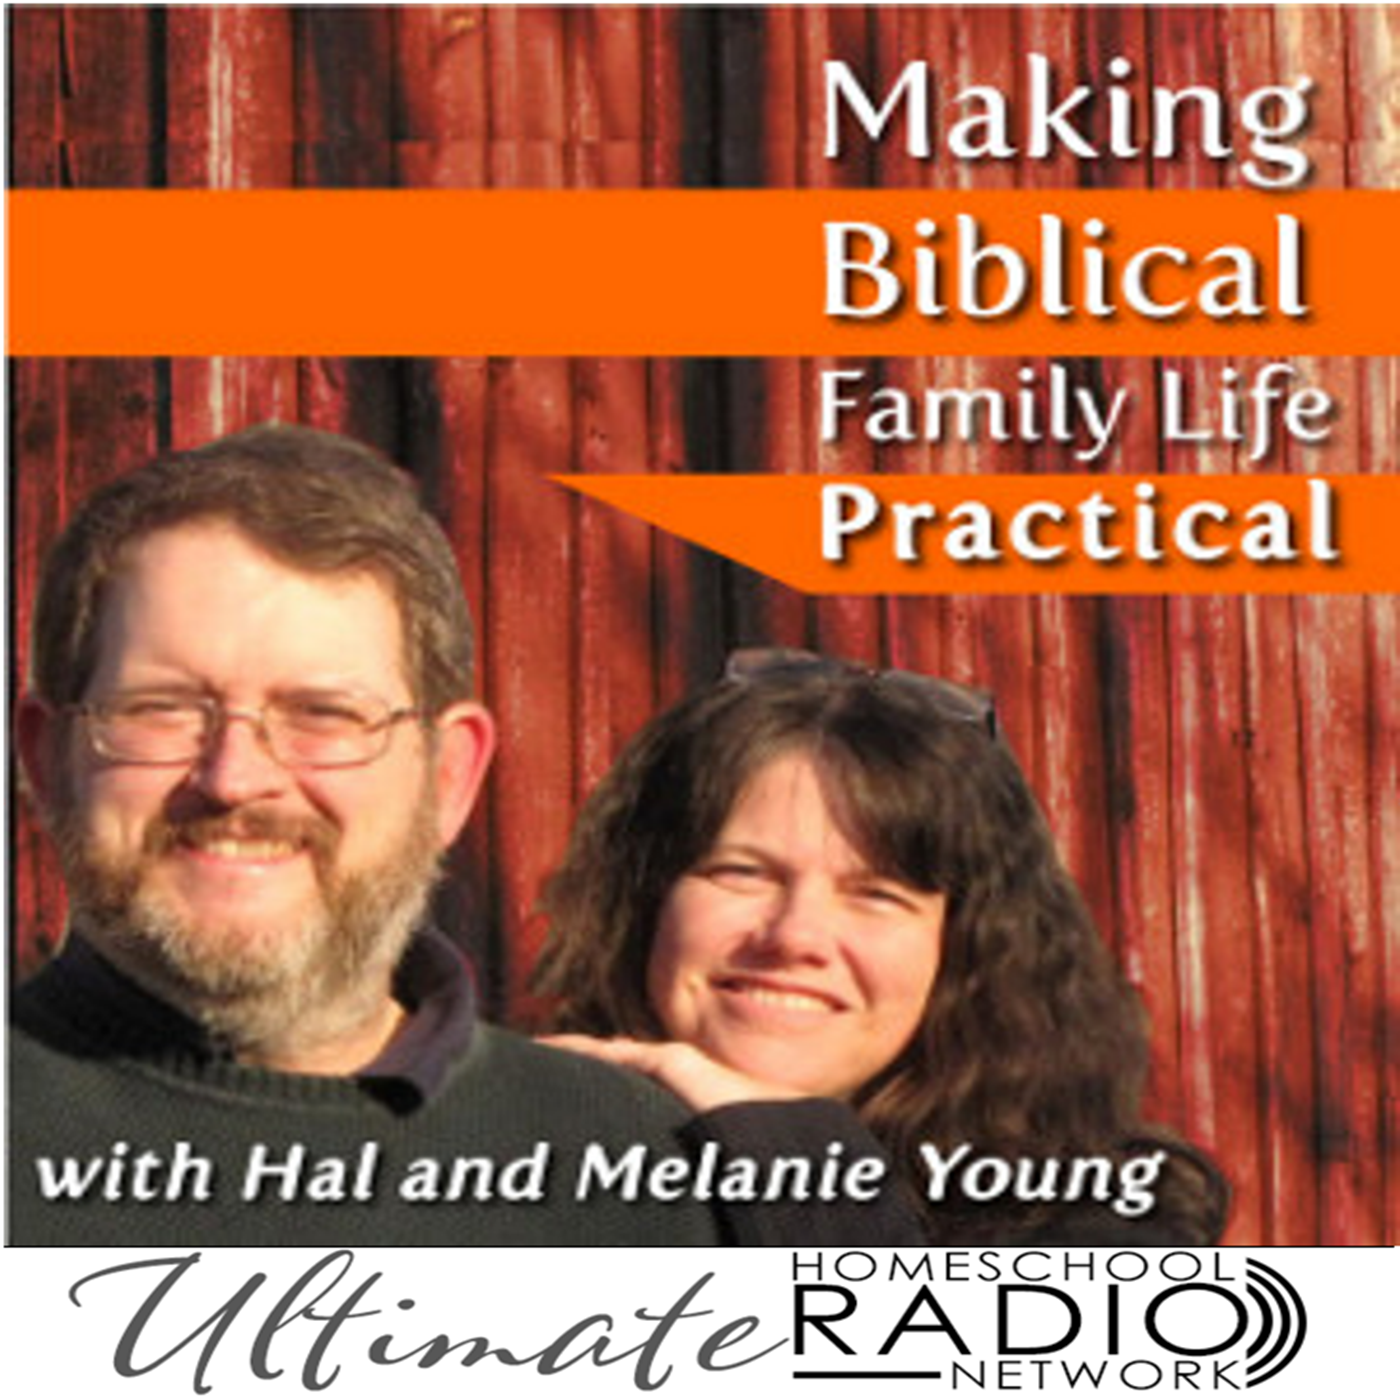 Making Biblical Family Life Practical